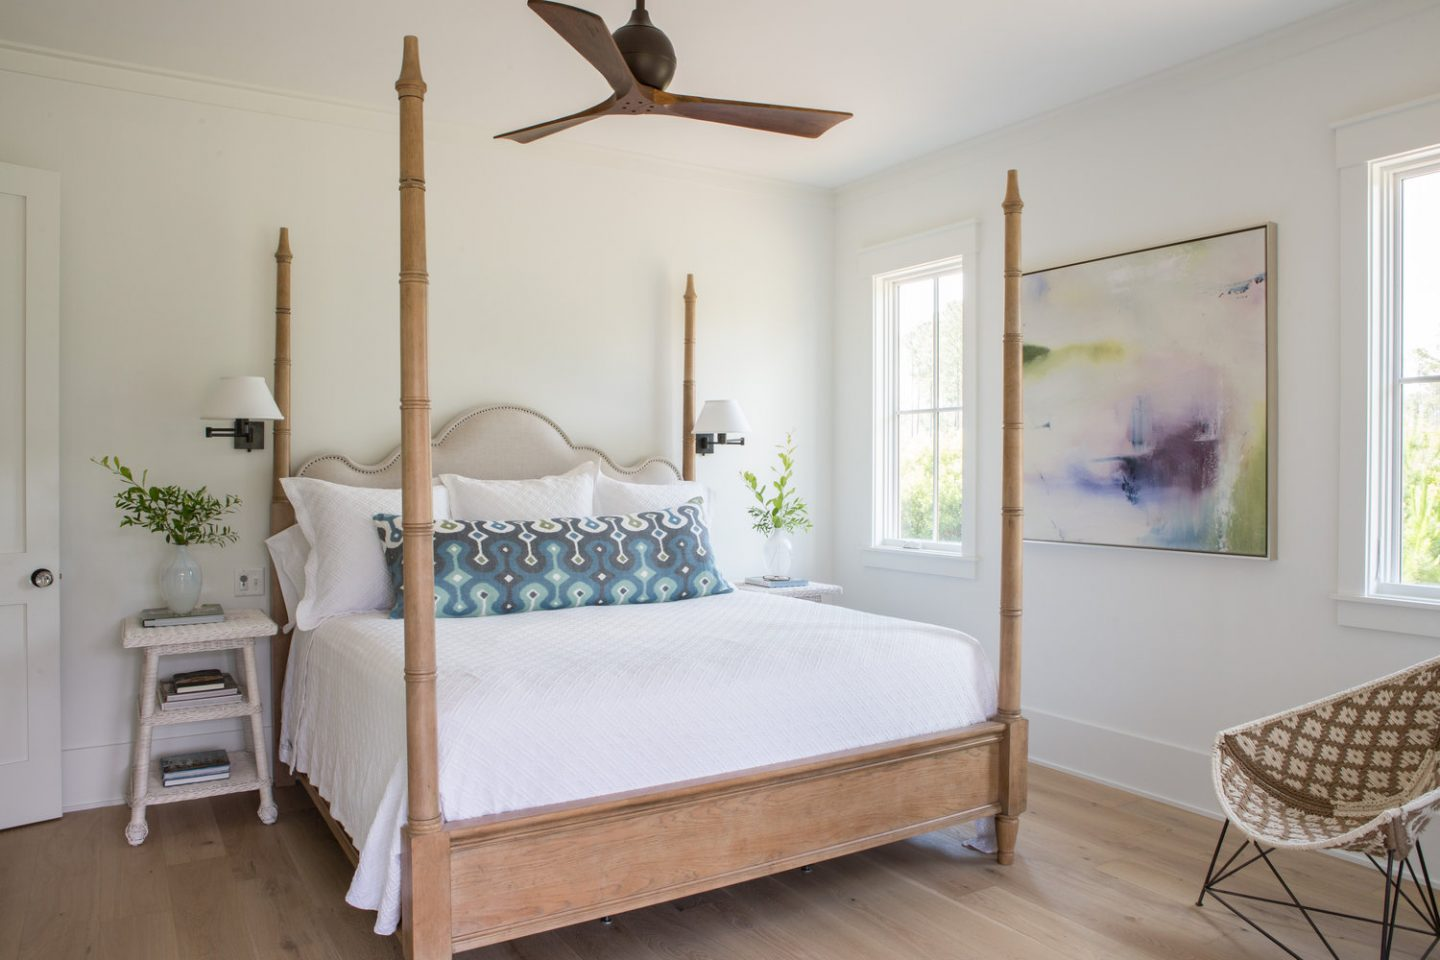 Master bedroom with poster bed. Board and batten coastal cottage in Palmetto Bluff with modern farmhouse interior design by Lisa Furey.